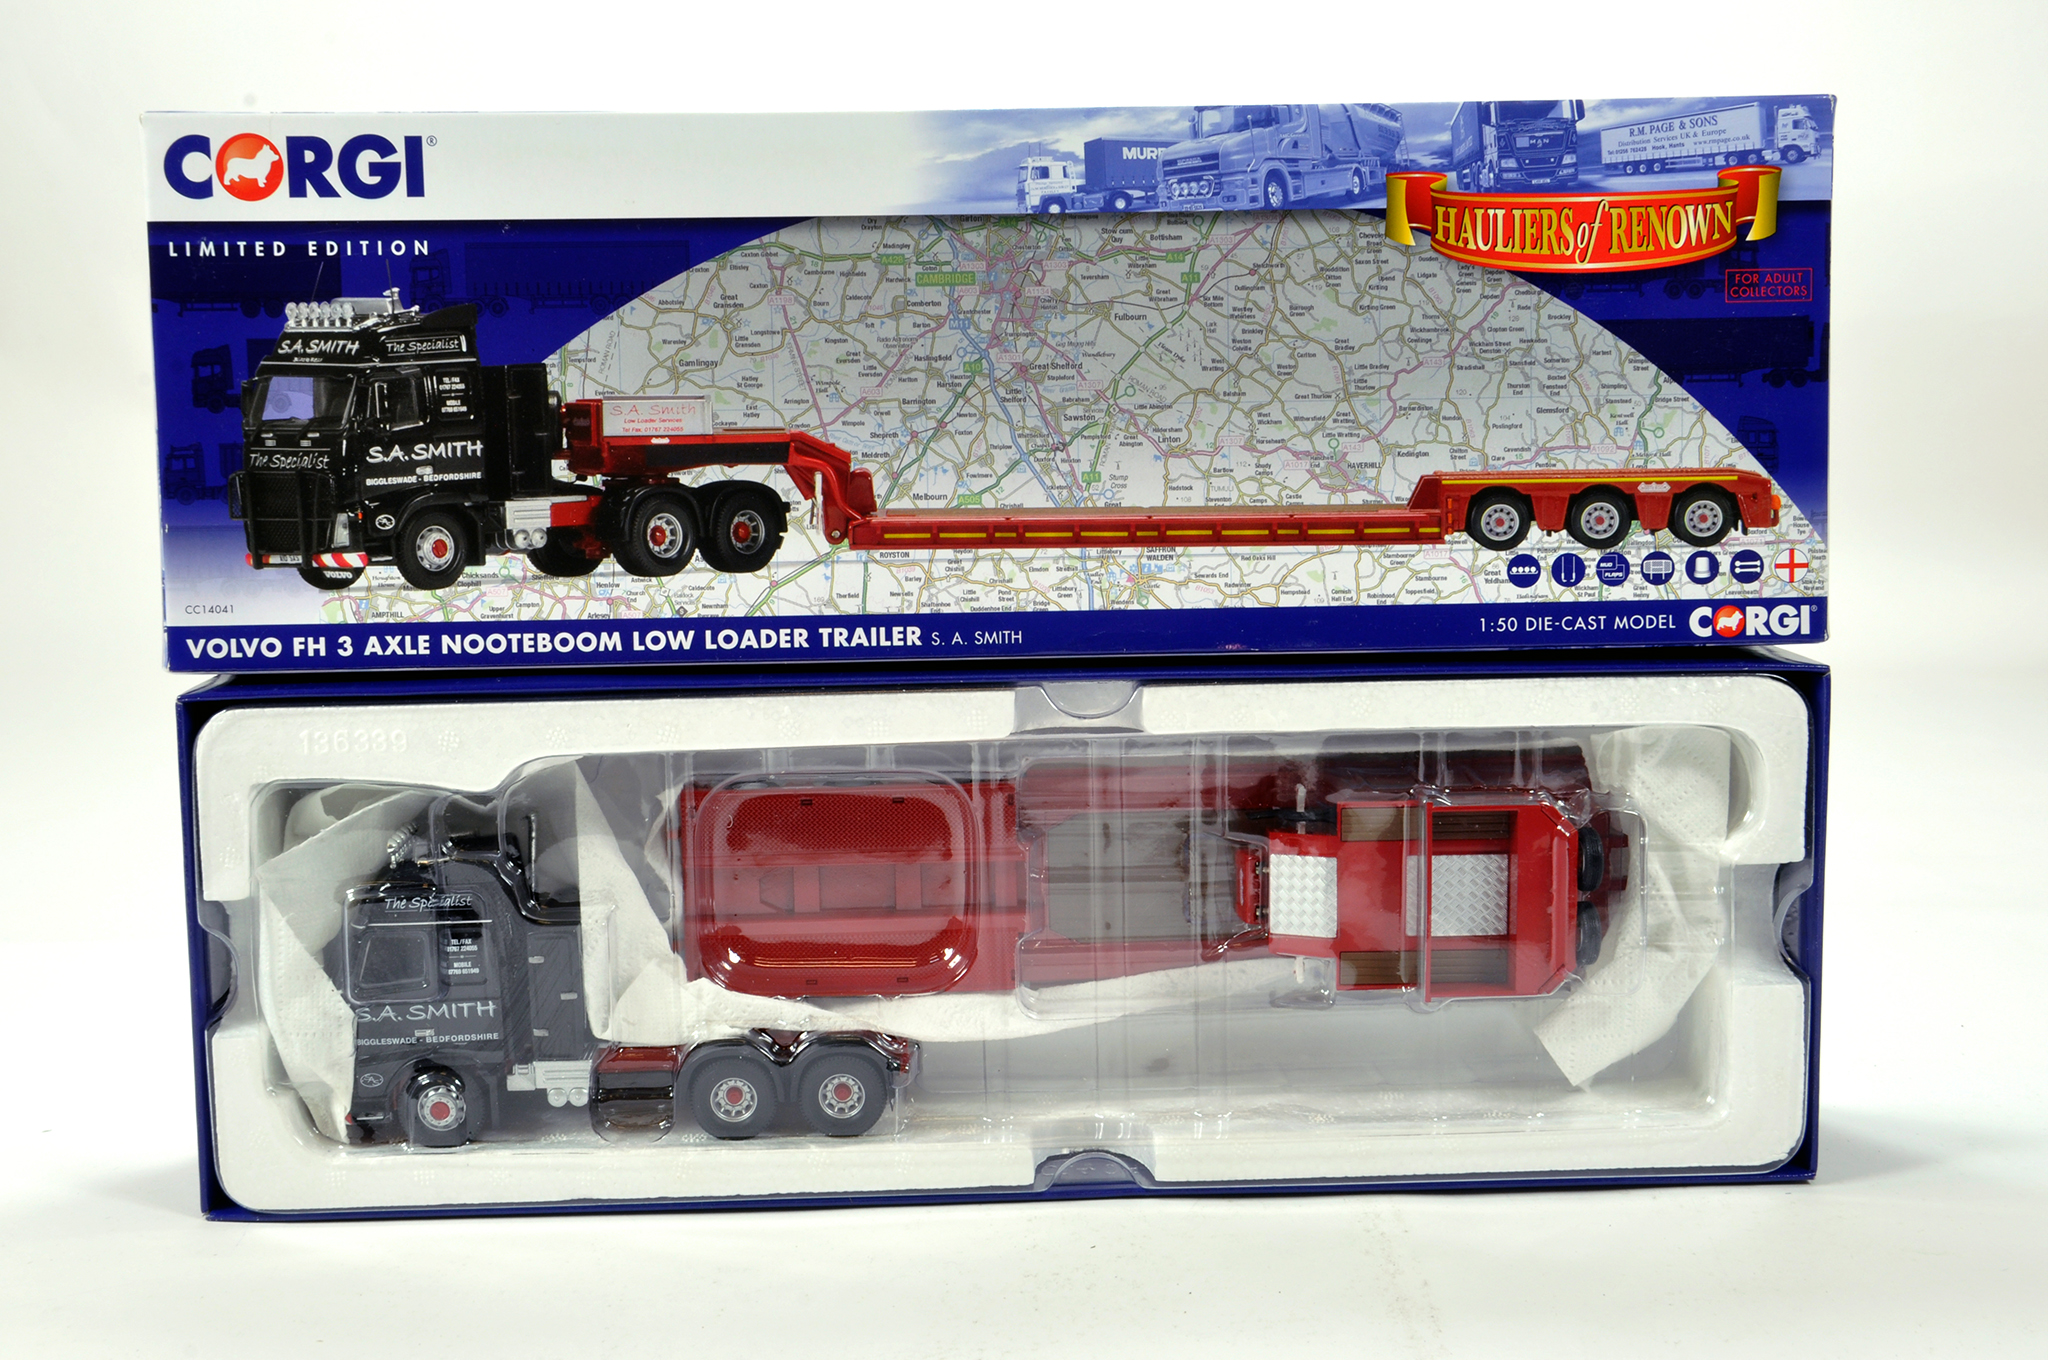 Lot 31 - Corgi 1/50 diecast truck issue comprising No. CC14041 Volvo FH Nooteboom Low Loader in livery of